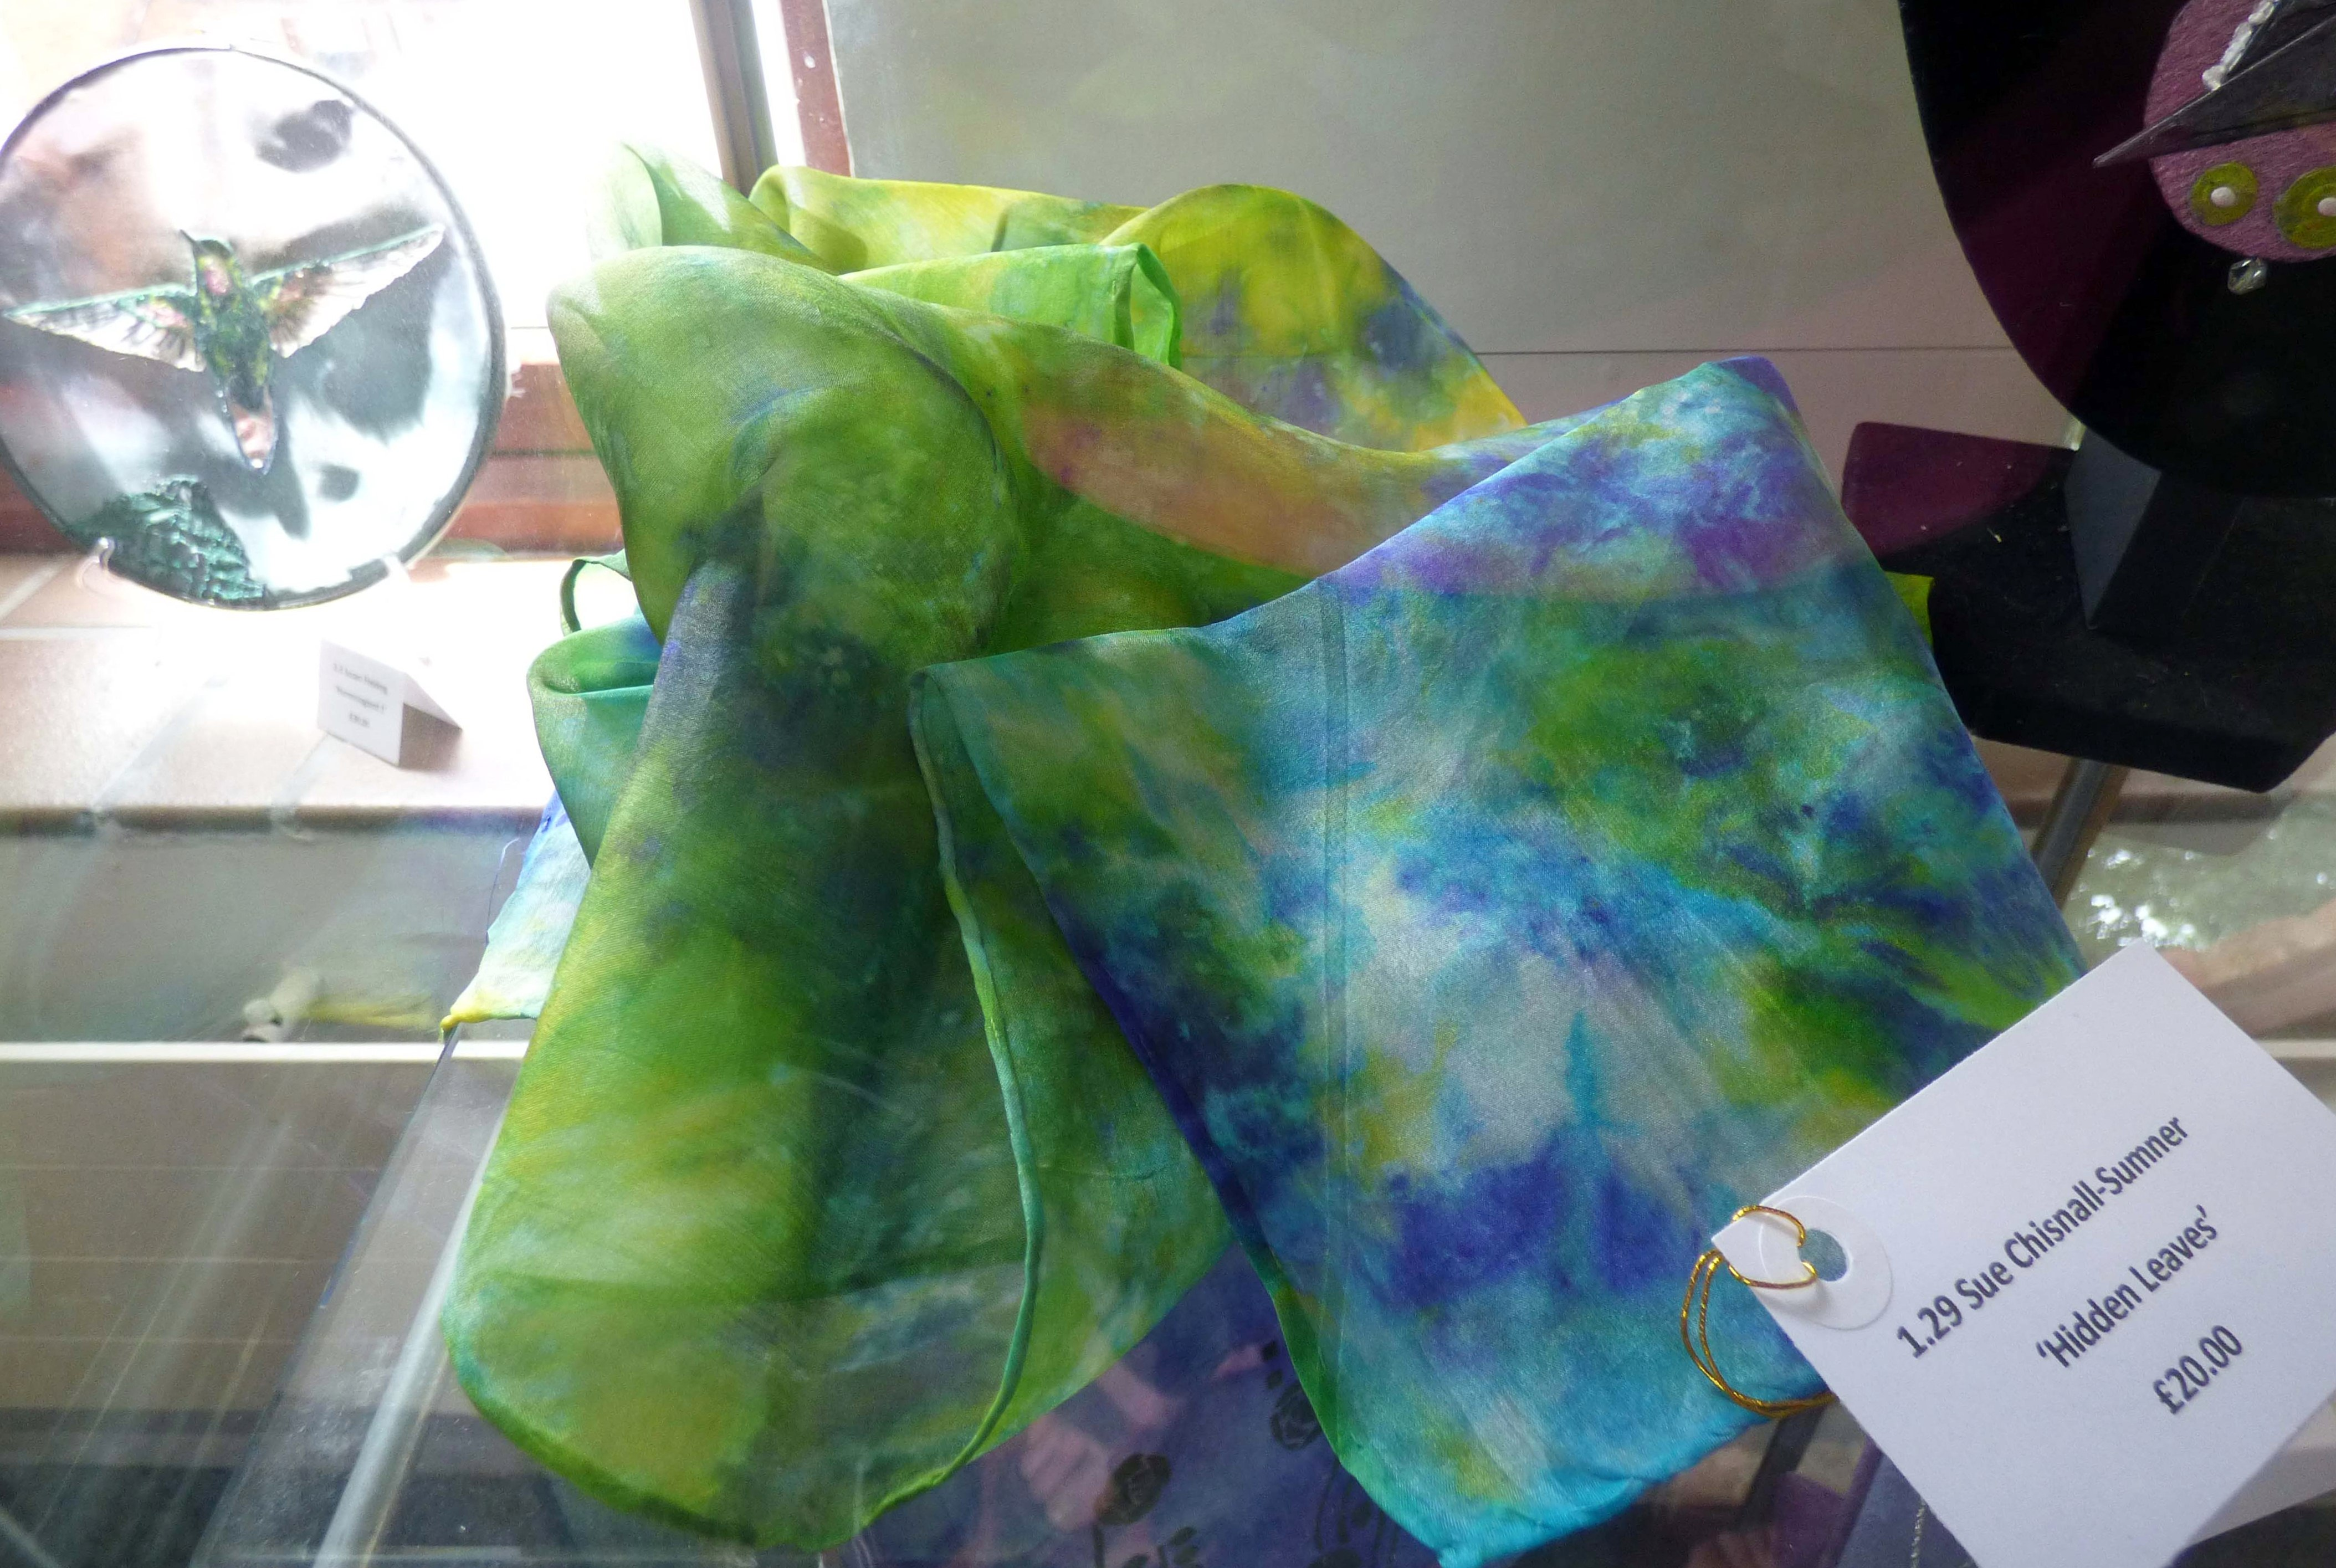 HIDDEN LEAVES by Sue Chisnall-Sumner, Natural progression Group, July 2021